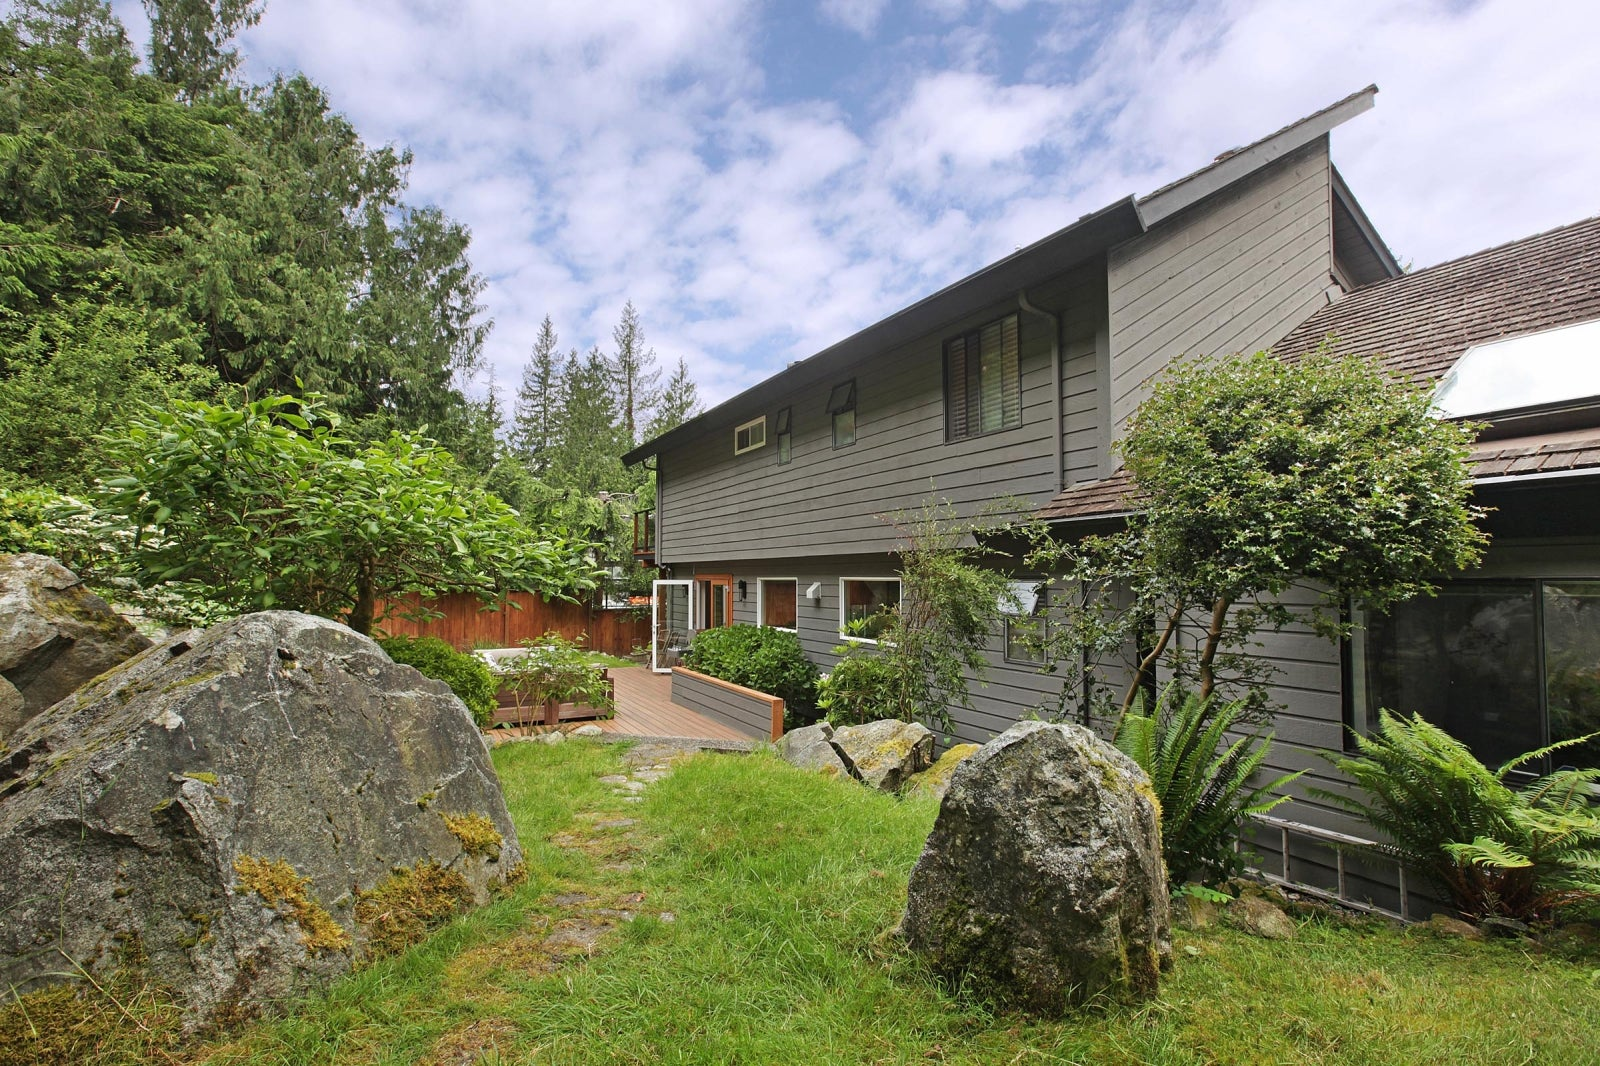 8589 BEDORA PLACE - Howe Sound House/Single Family for sale, 4 Bedrooms (R2177298) #22